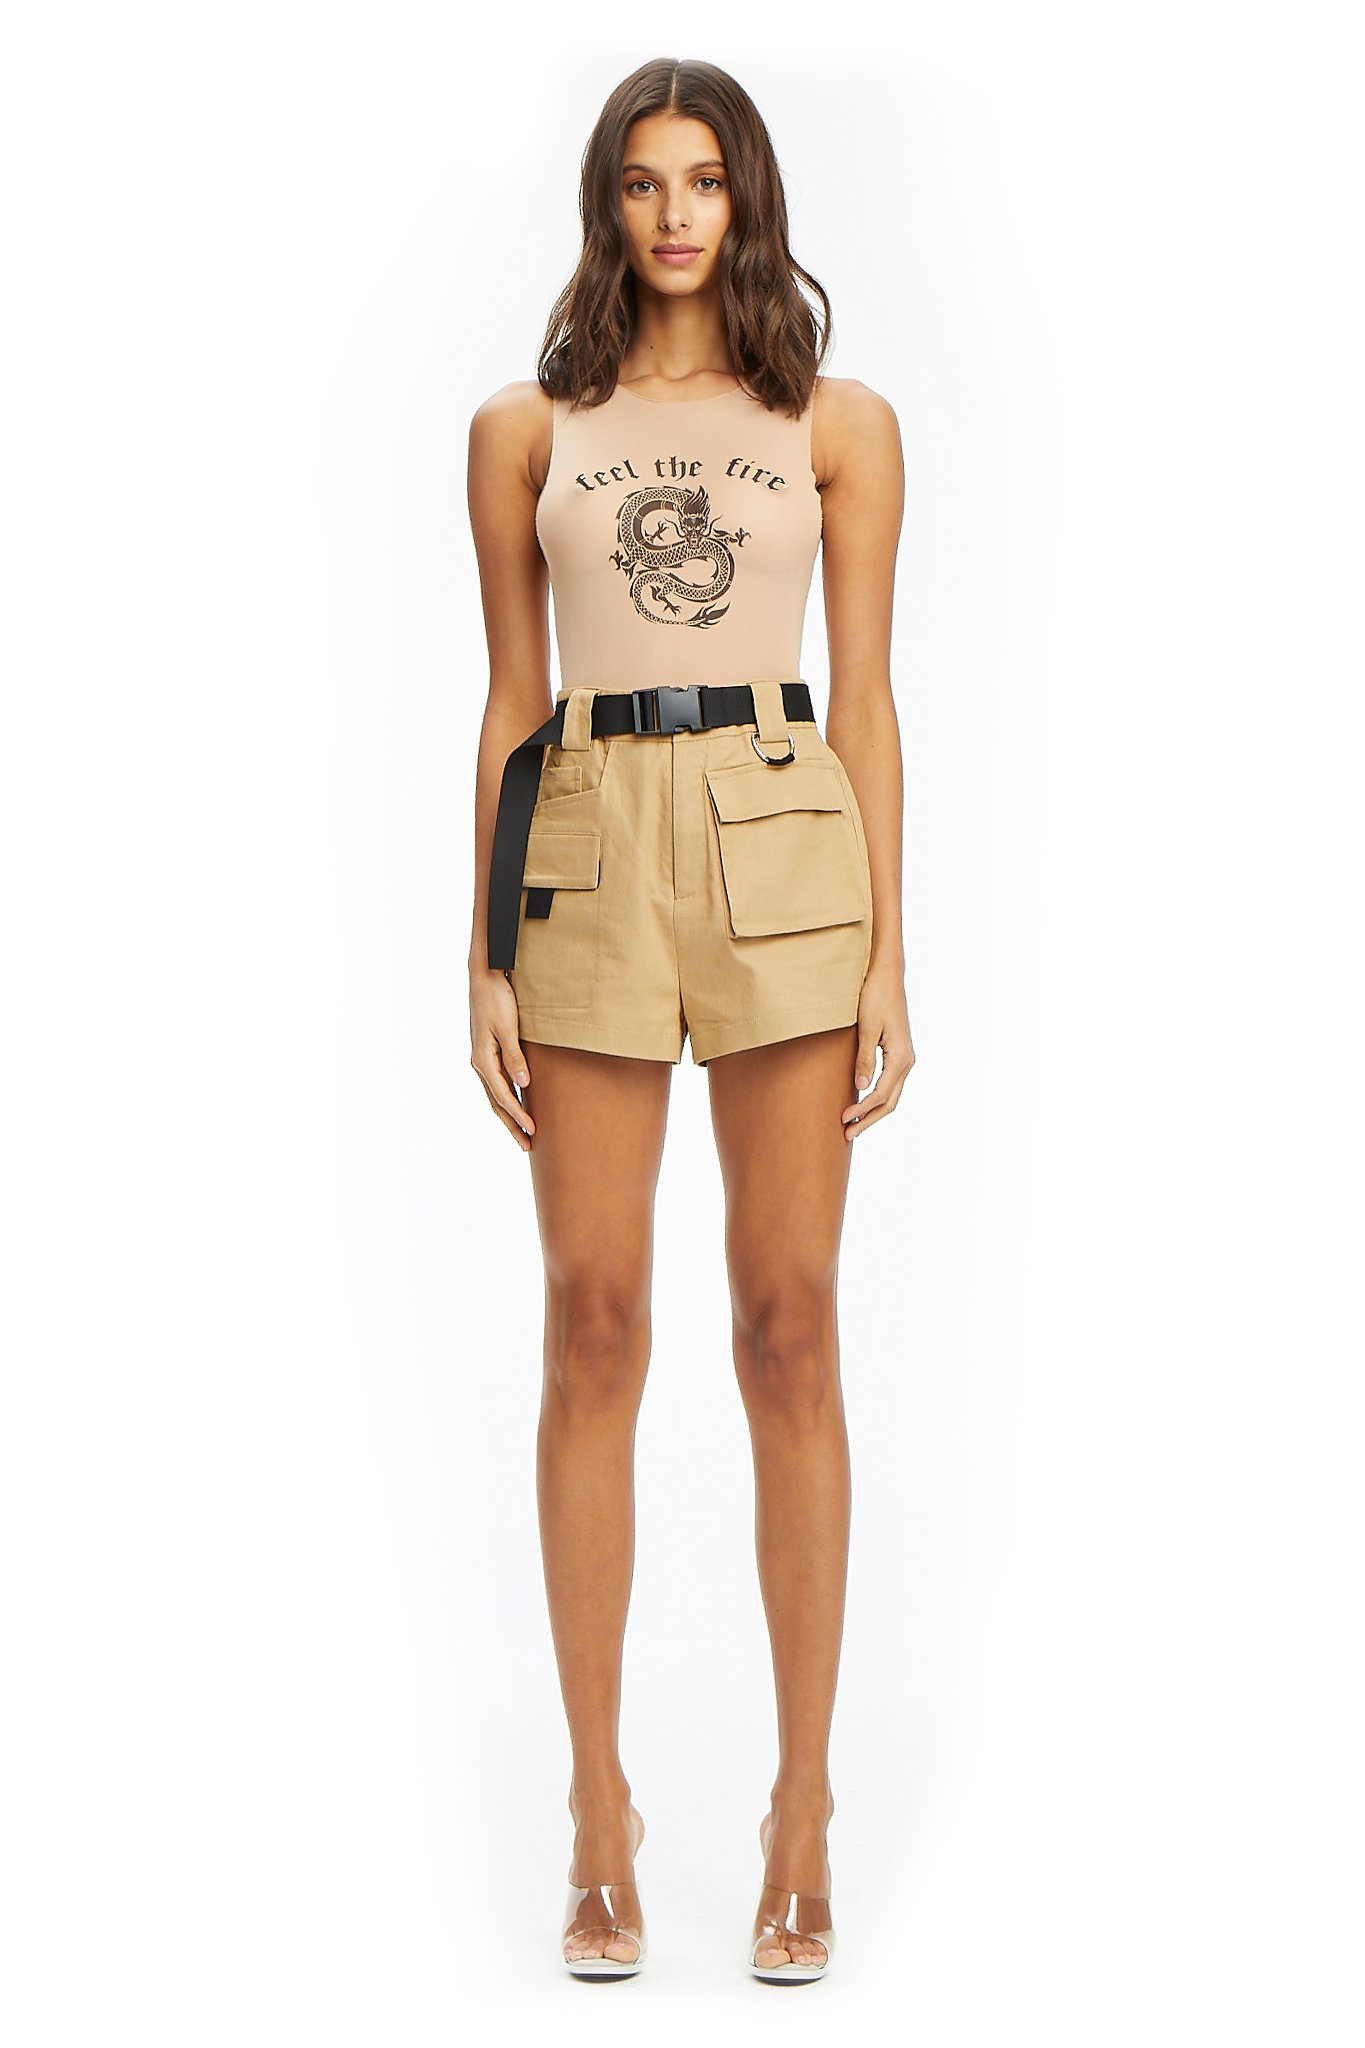 https://iamgia.com/collections/all/products/harper-short-tan